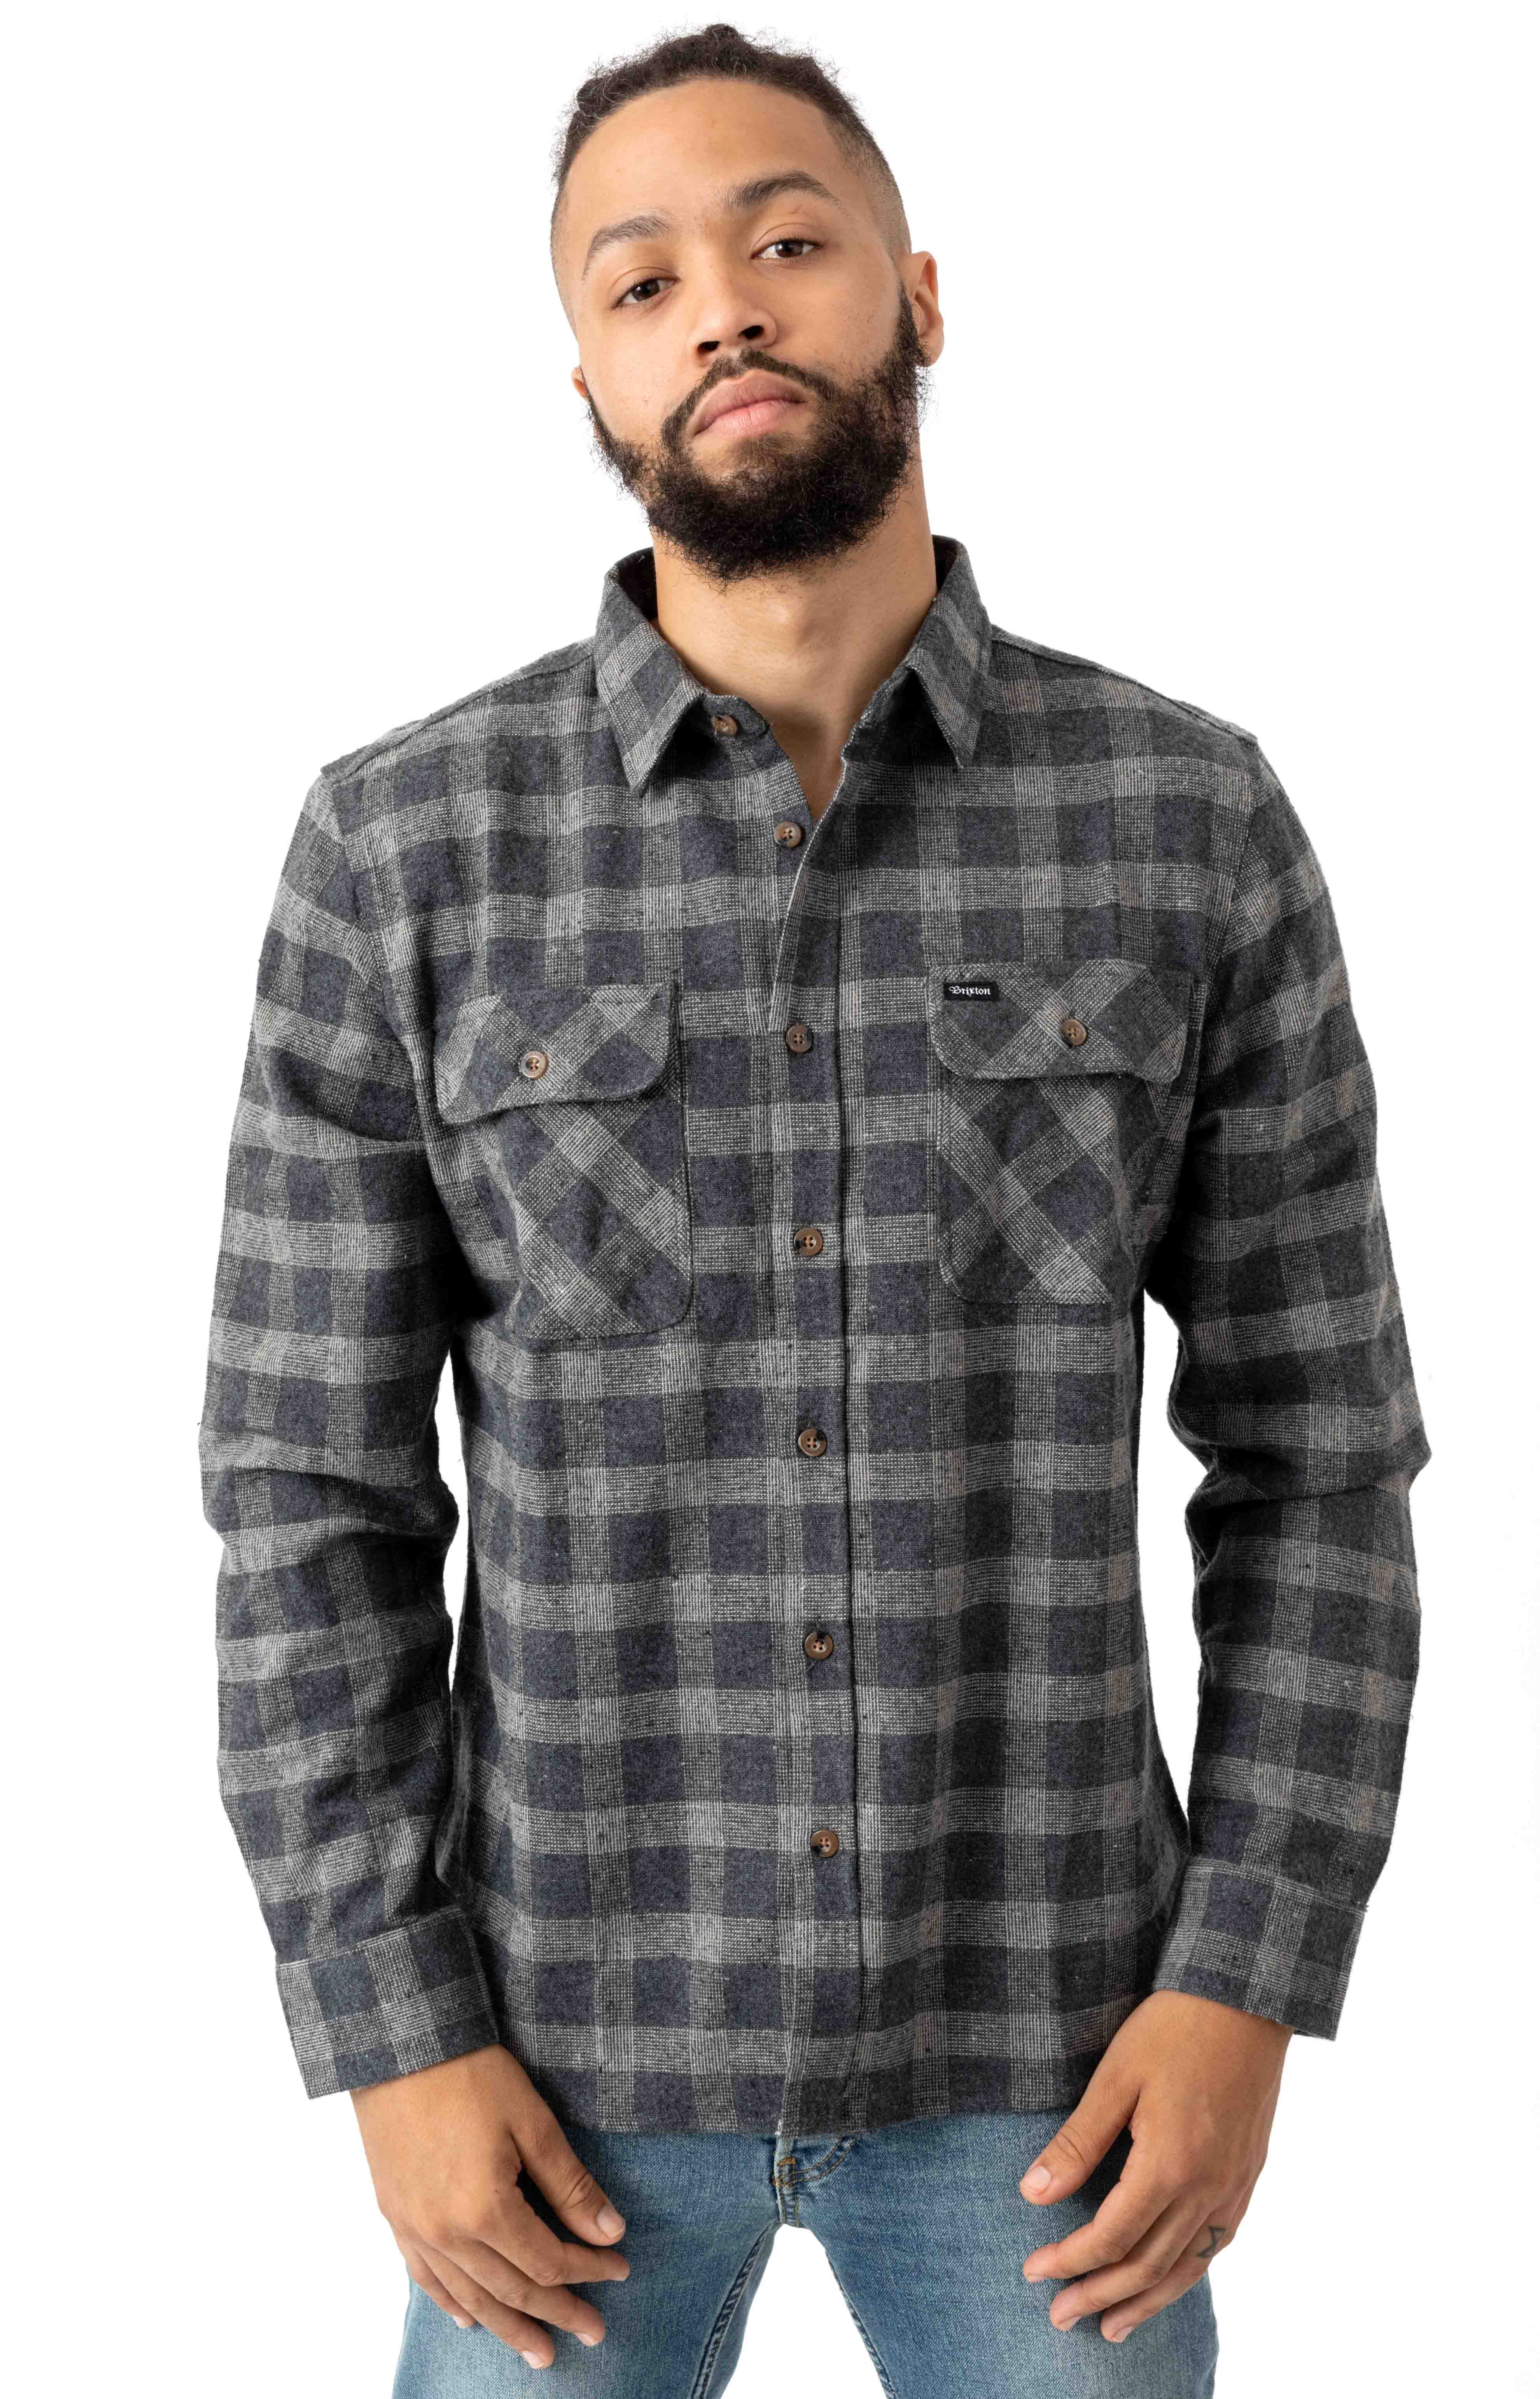 Bowery L/S Flannel - Black/Heather Grey